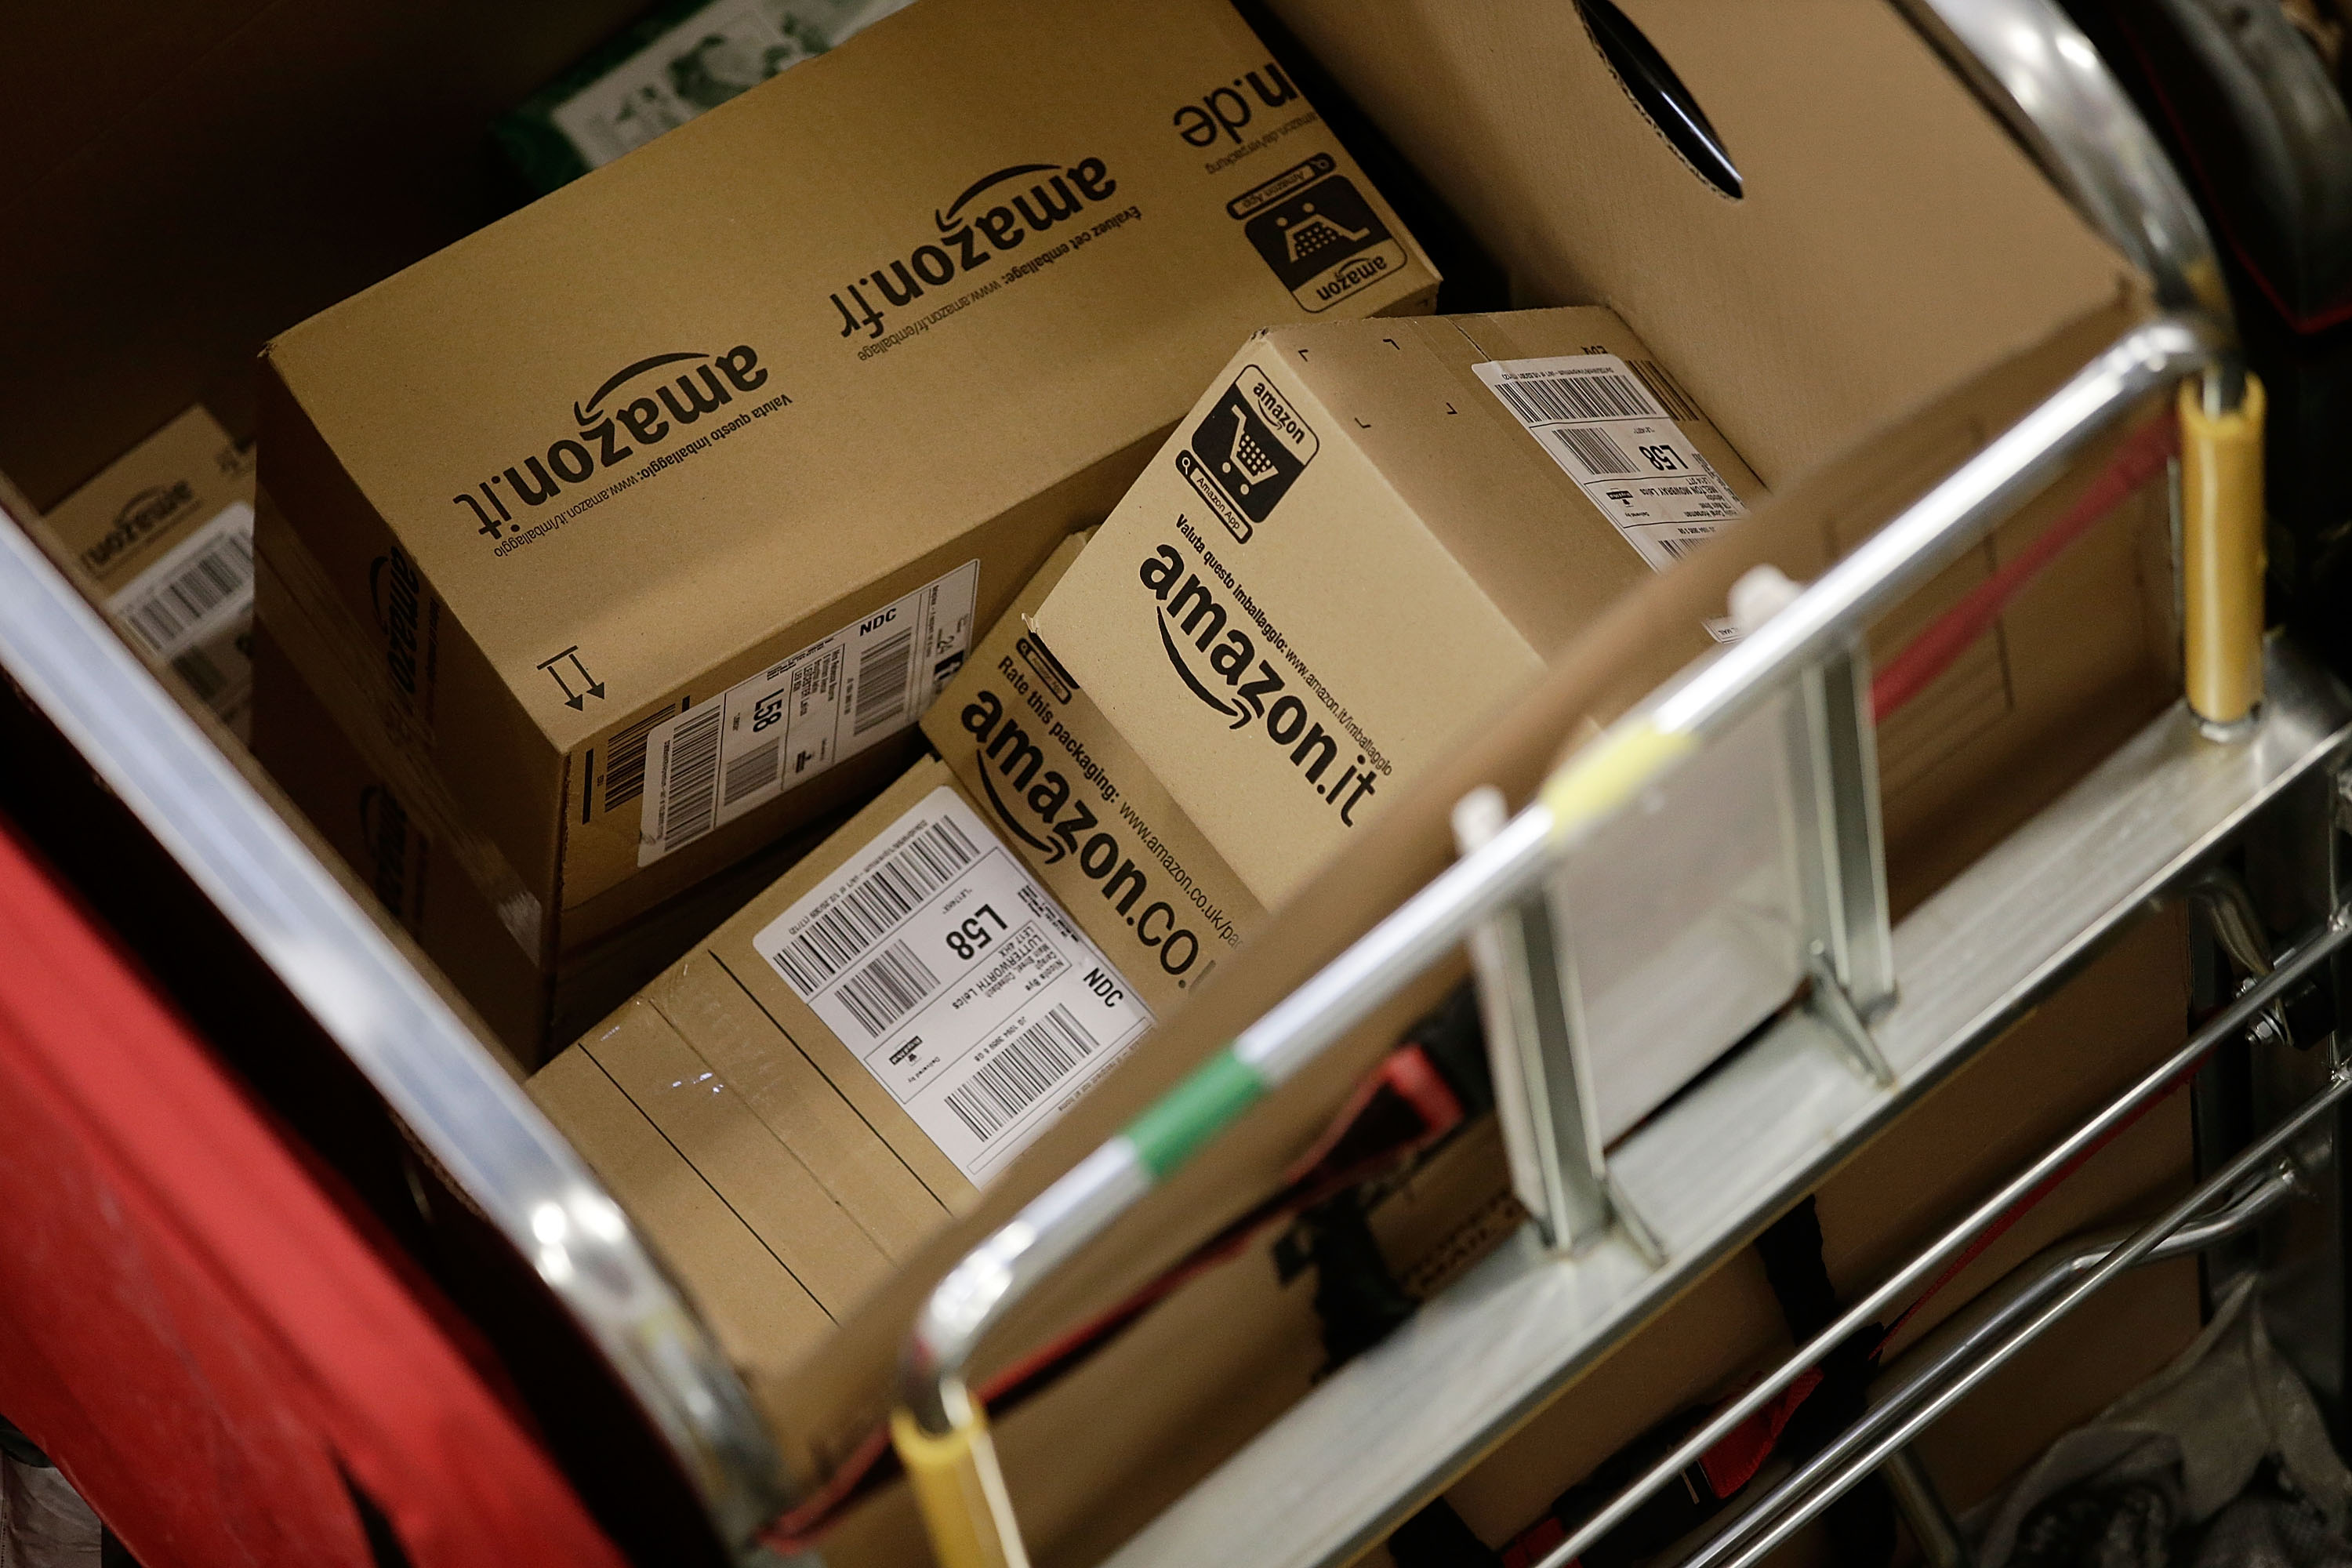 Amazon Prime to offer two-day delivery for orders shipped to the UK from inside Europe - The Next Web